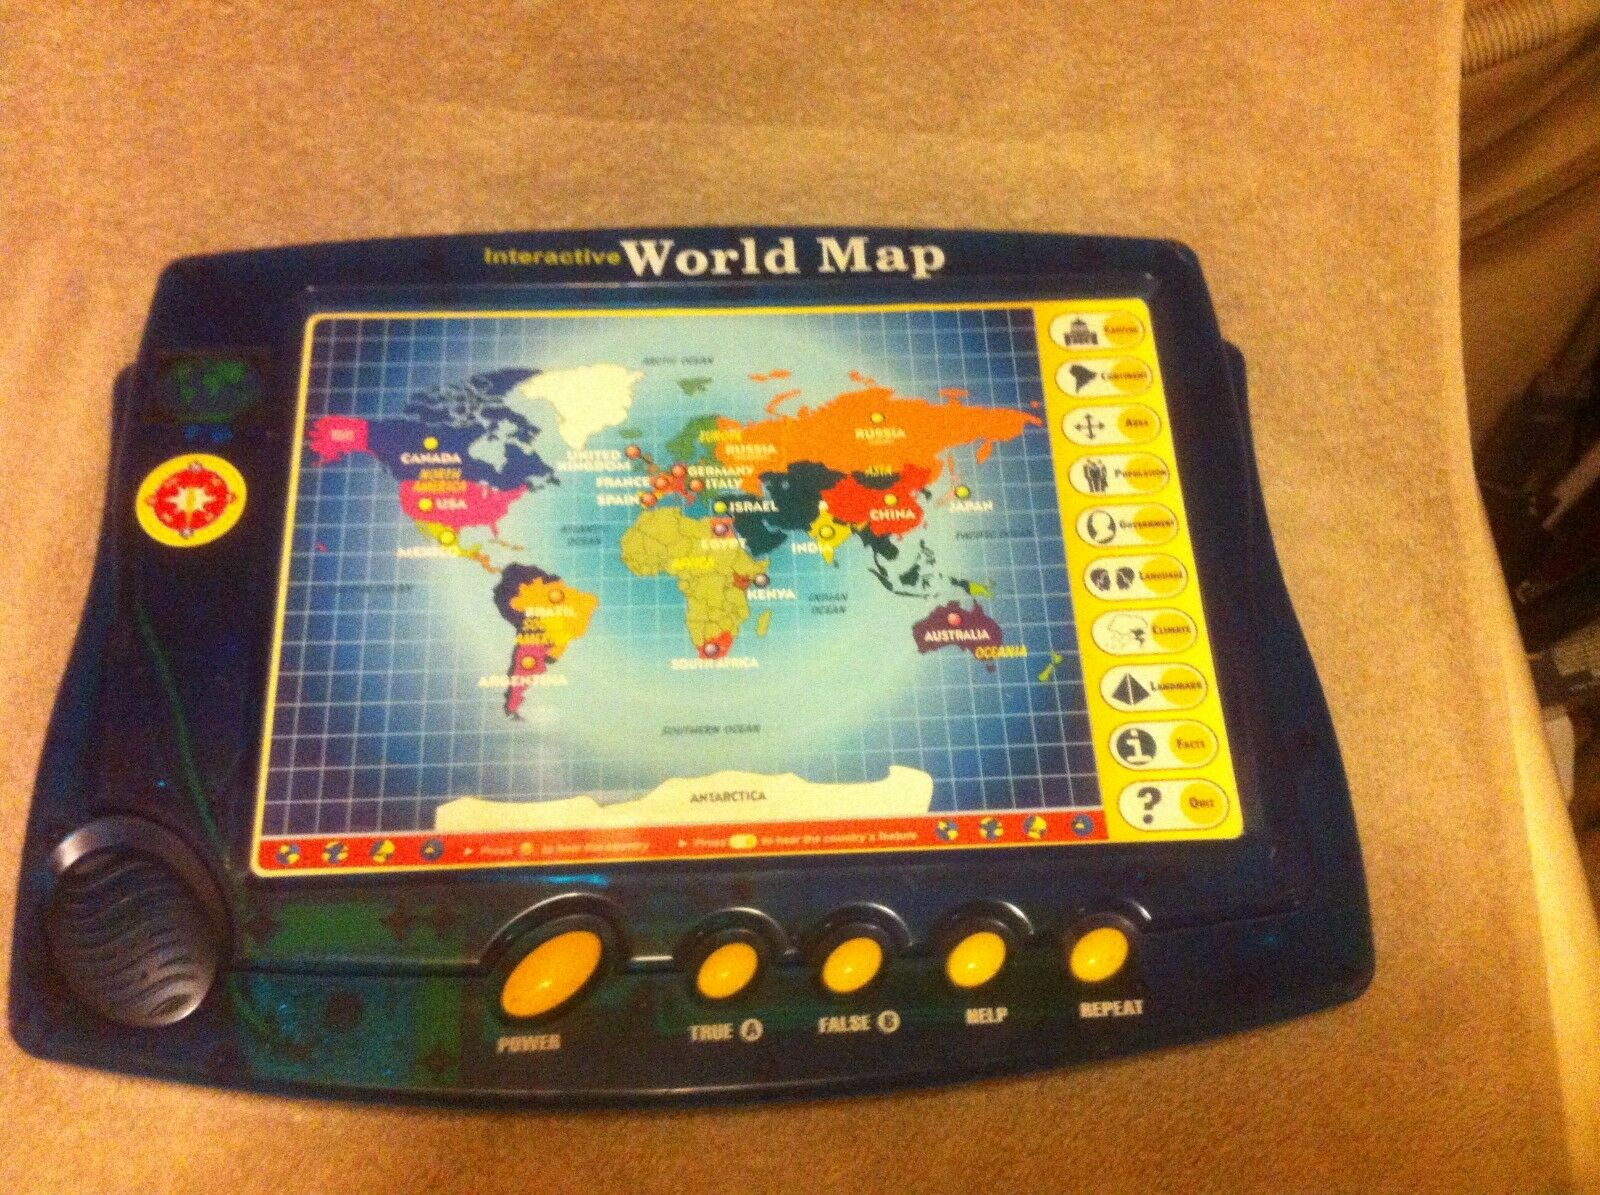 Interactive world map scientific toys battery facts quiz interactive world map scientific toys battery facts quiz free ship vgc ebay gumiabroncs Image collections